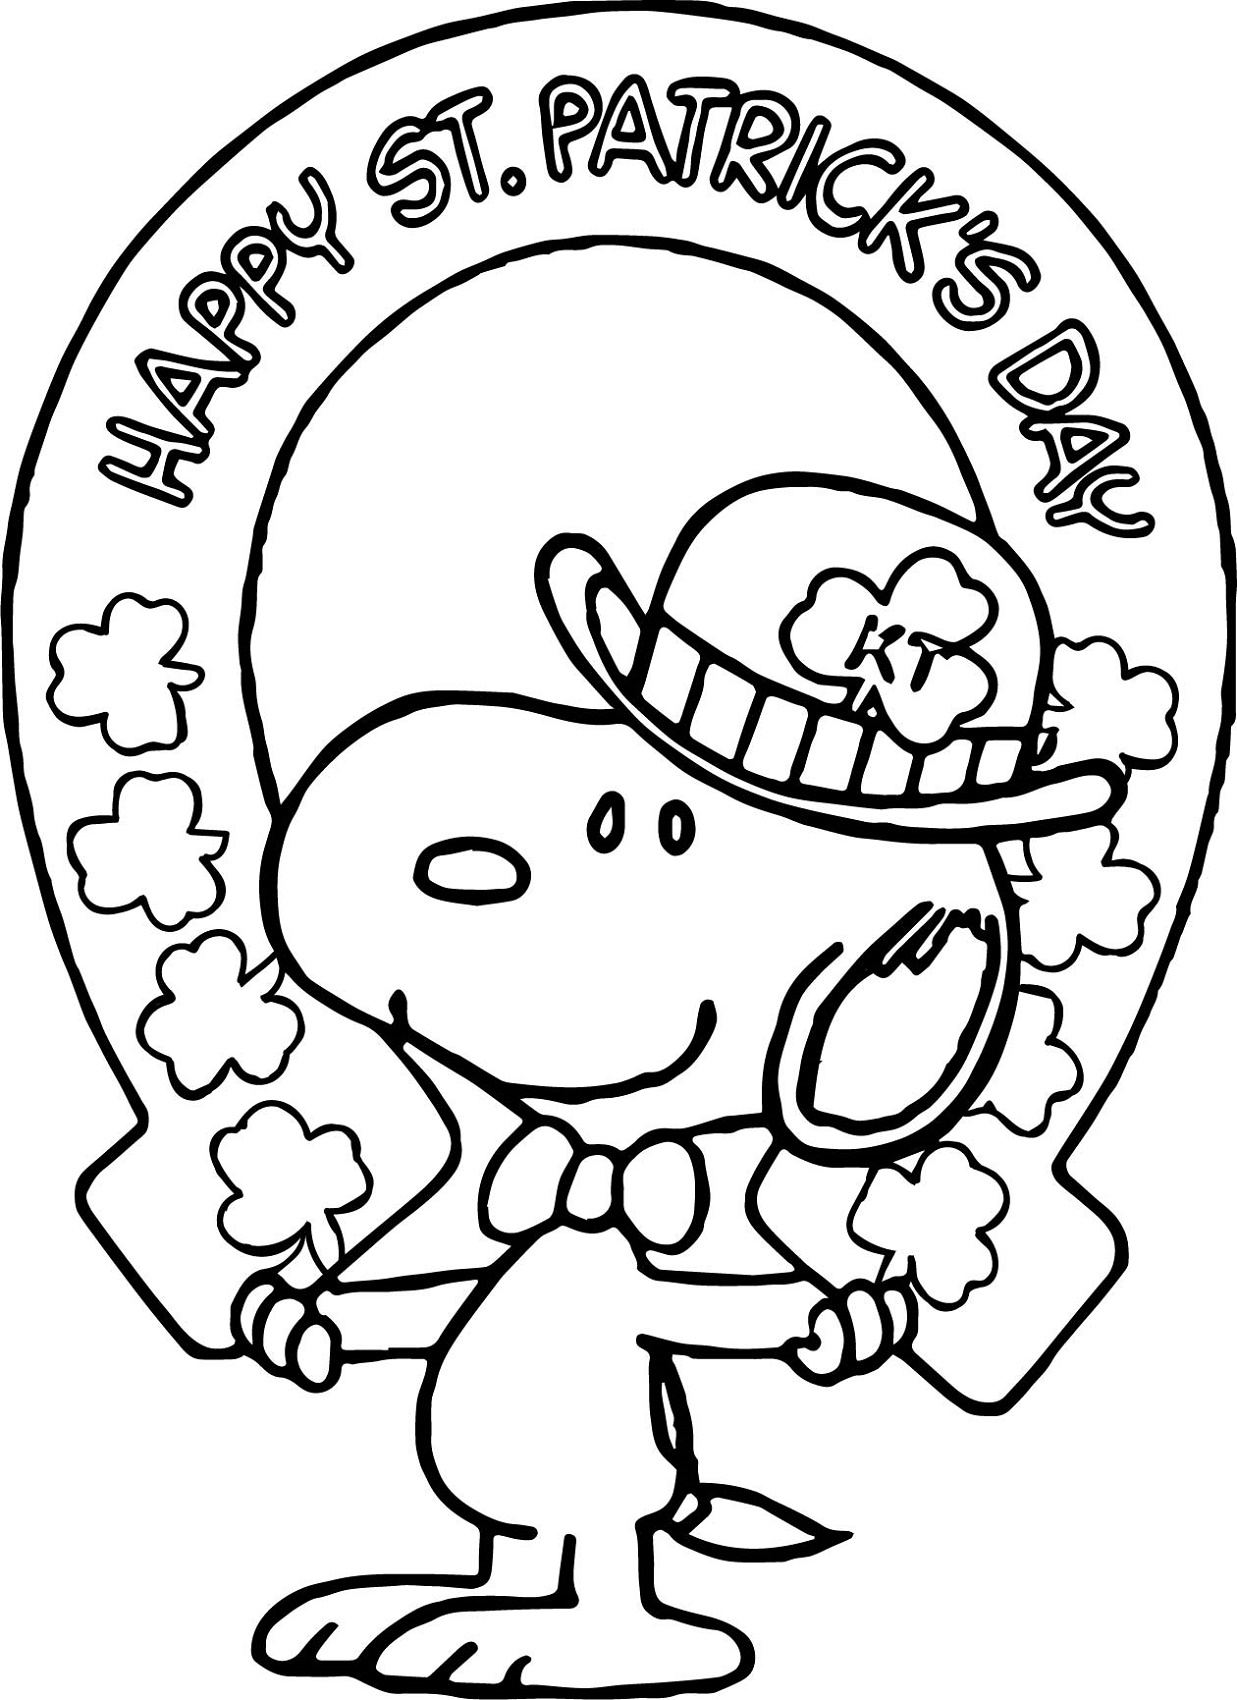 St Patrick's Day Coloring Pages Snoopy – K5 Worksheets